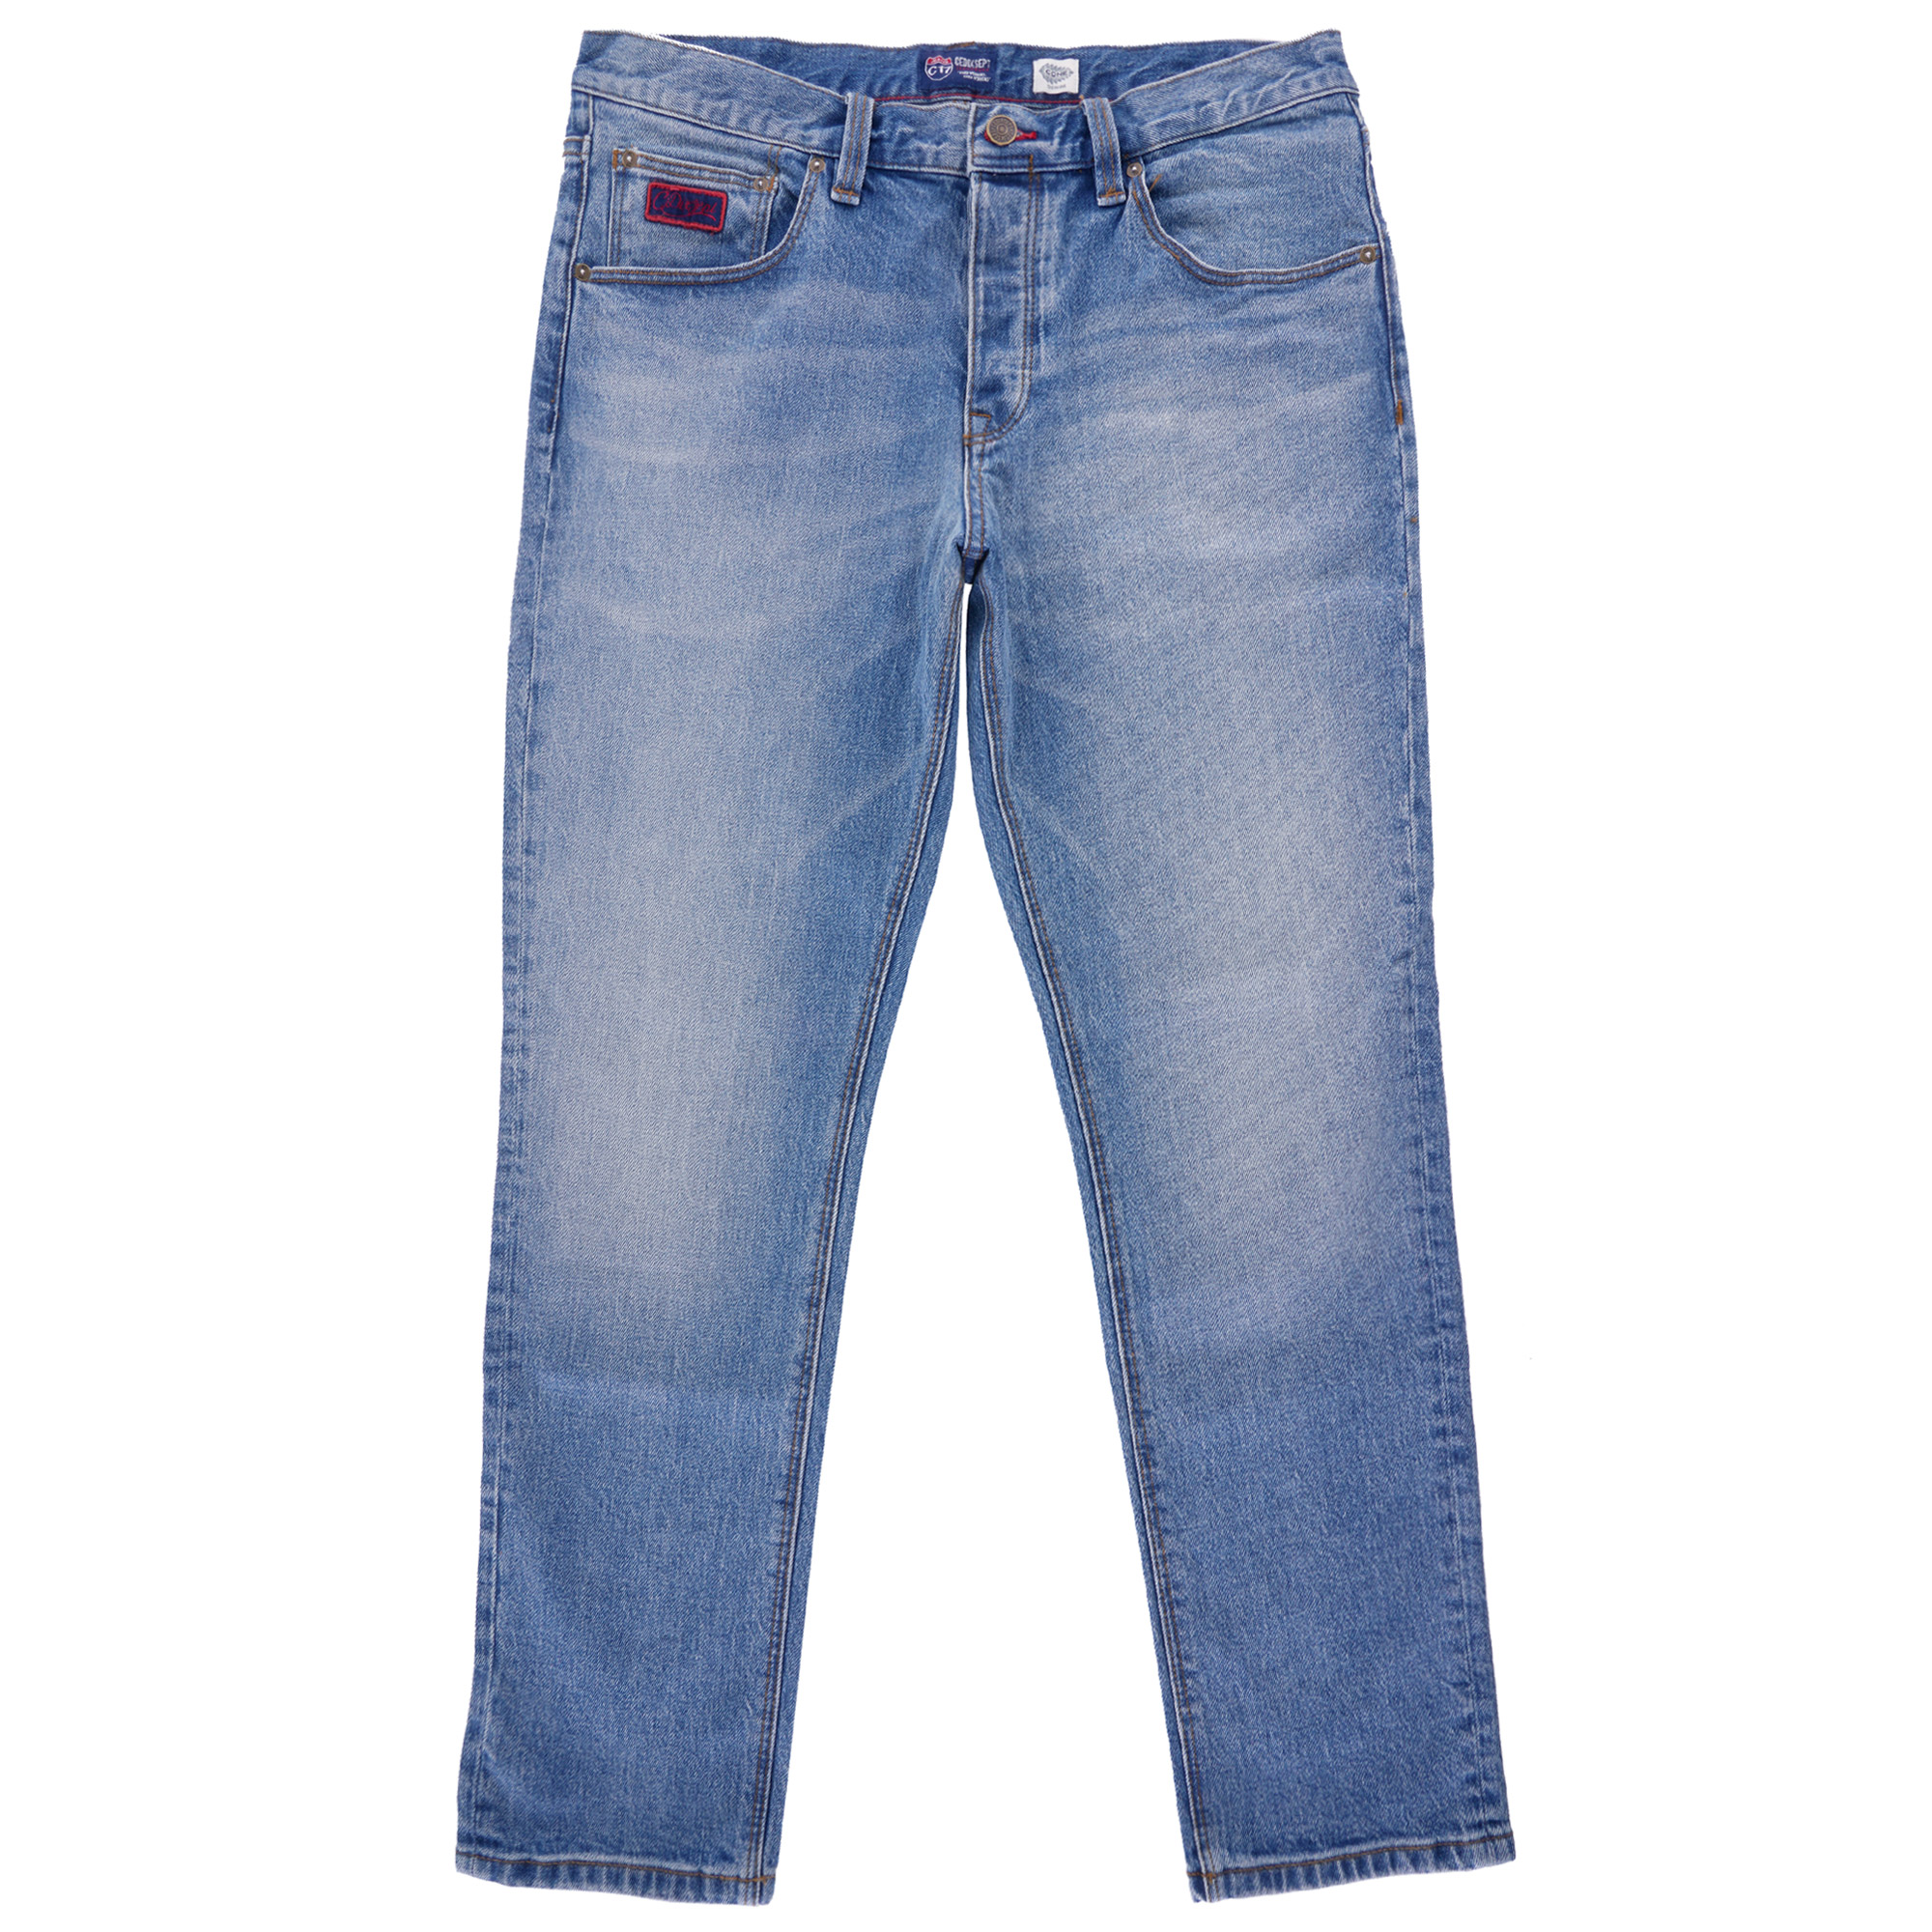 C17 Washed Jeans